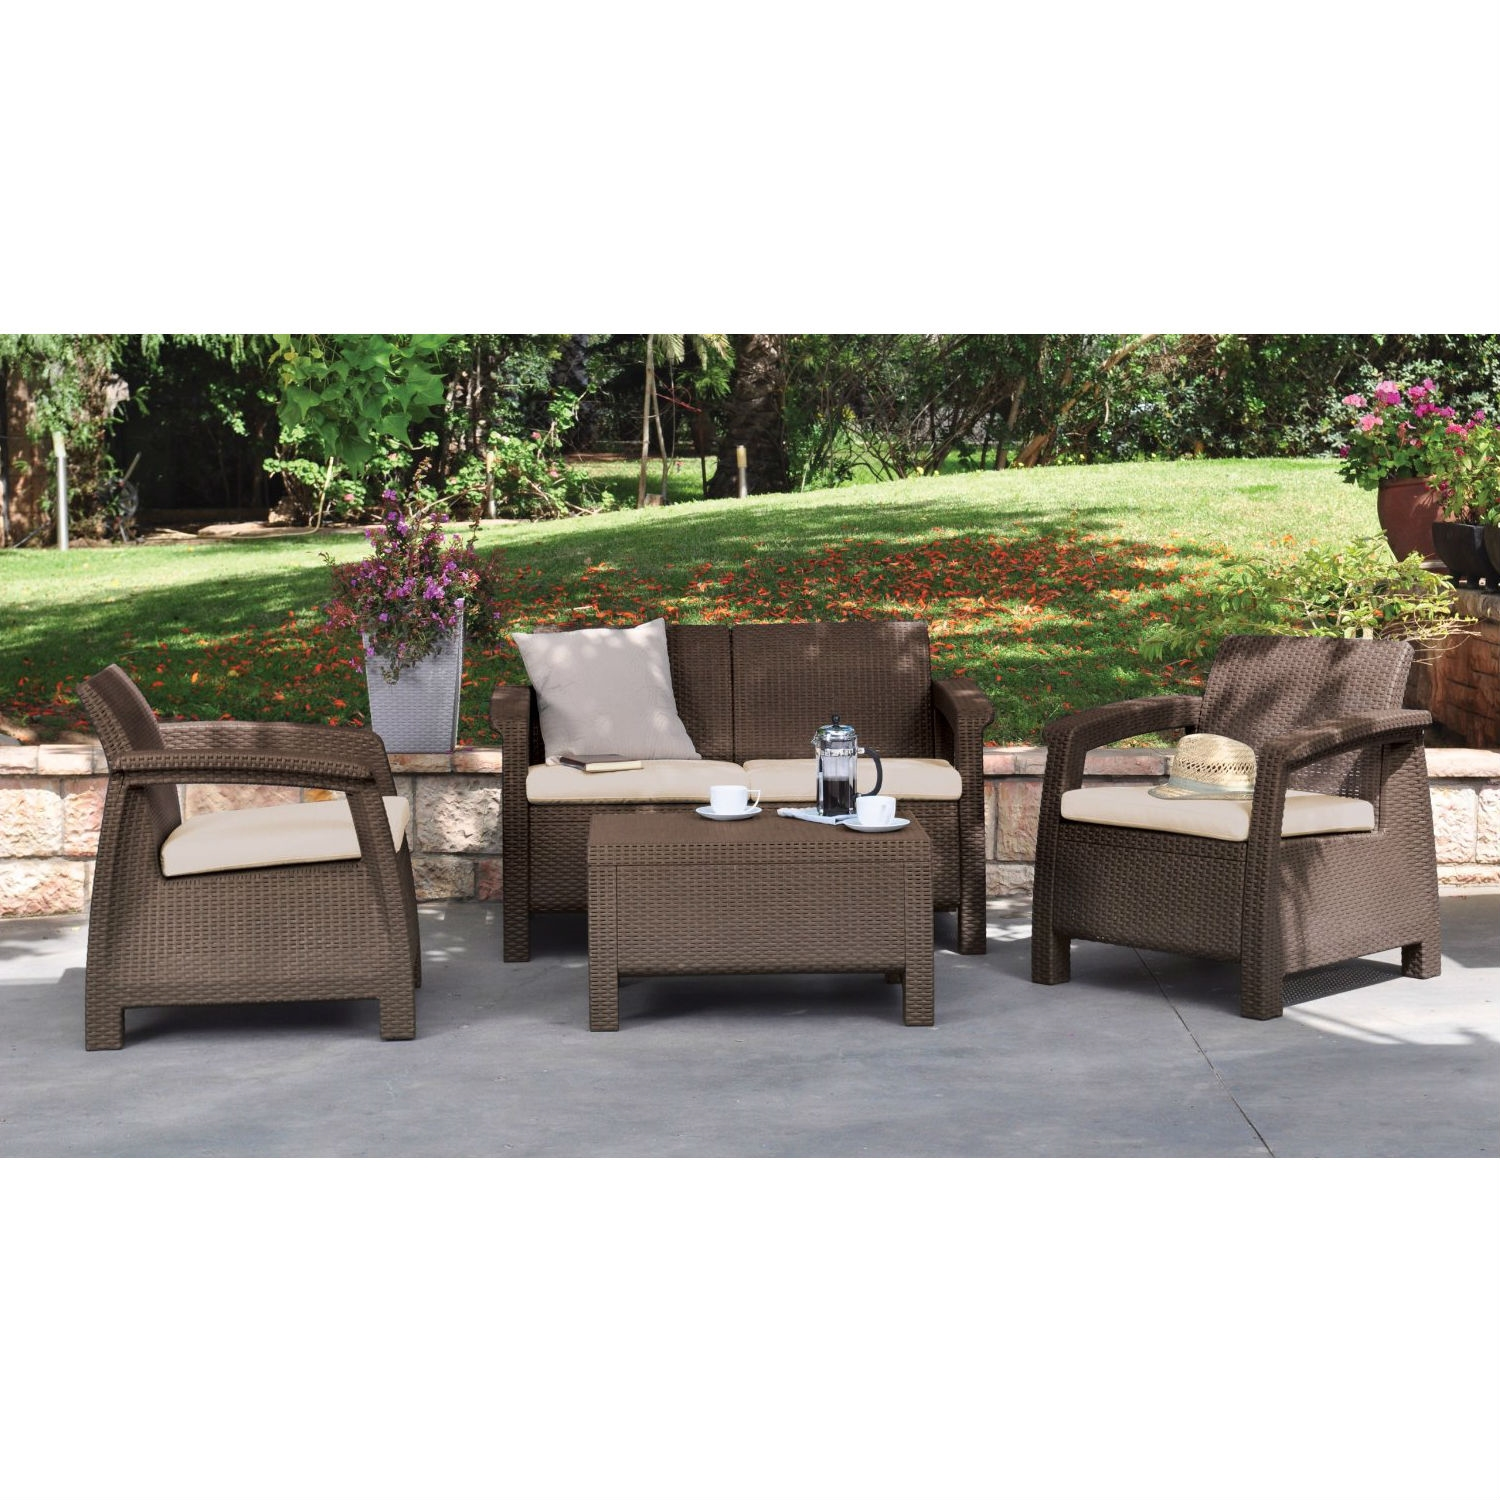 Retail Price: $129.00 - Modern Patio Table Ottoman In Brown Outdoor Weather Resistant